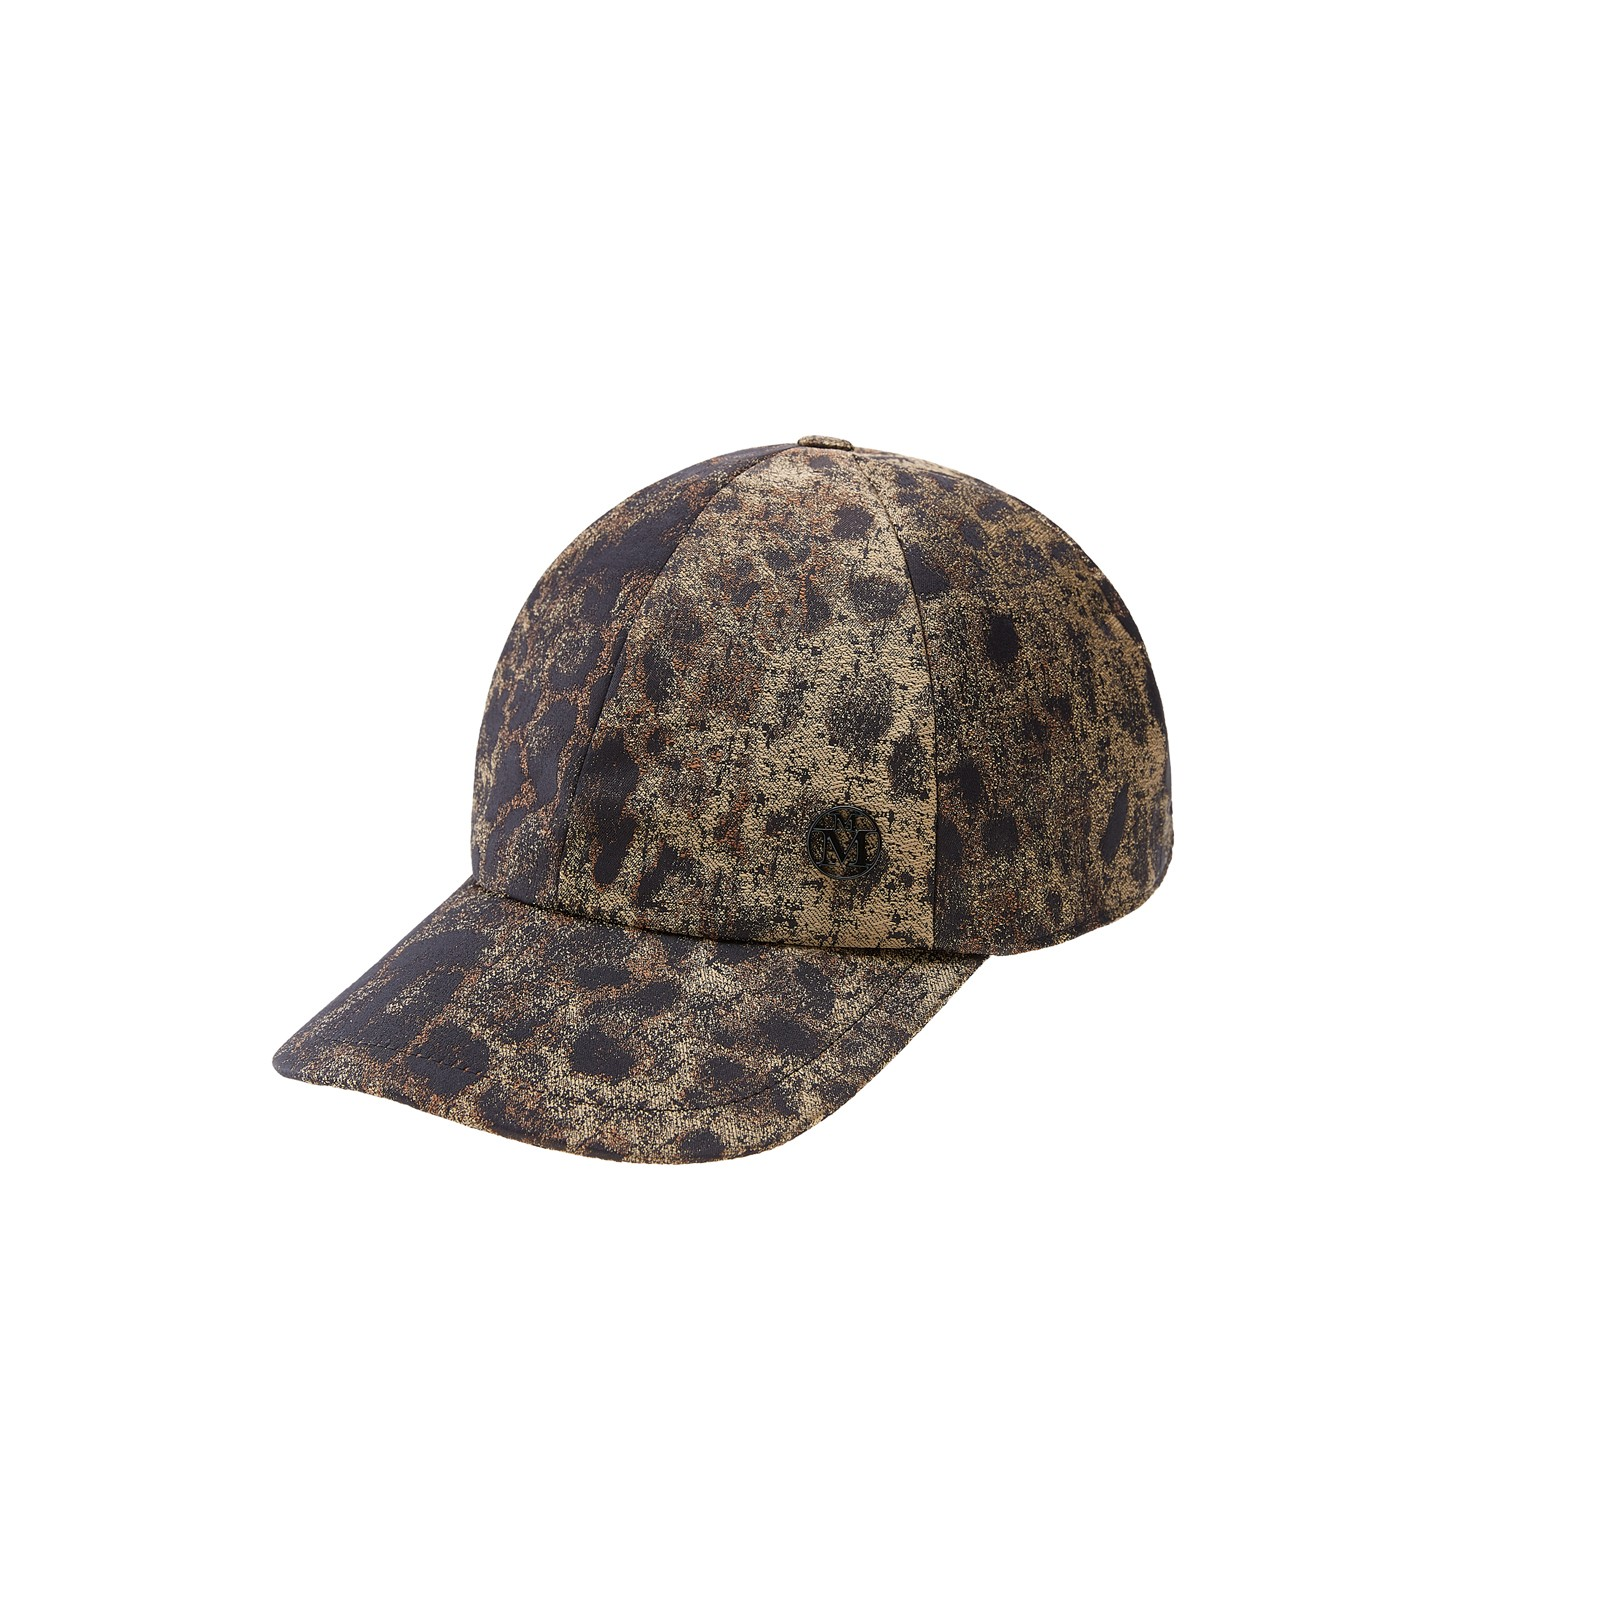 Panther fabric baseball cap